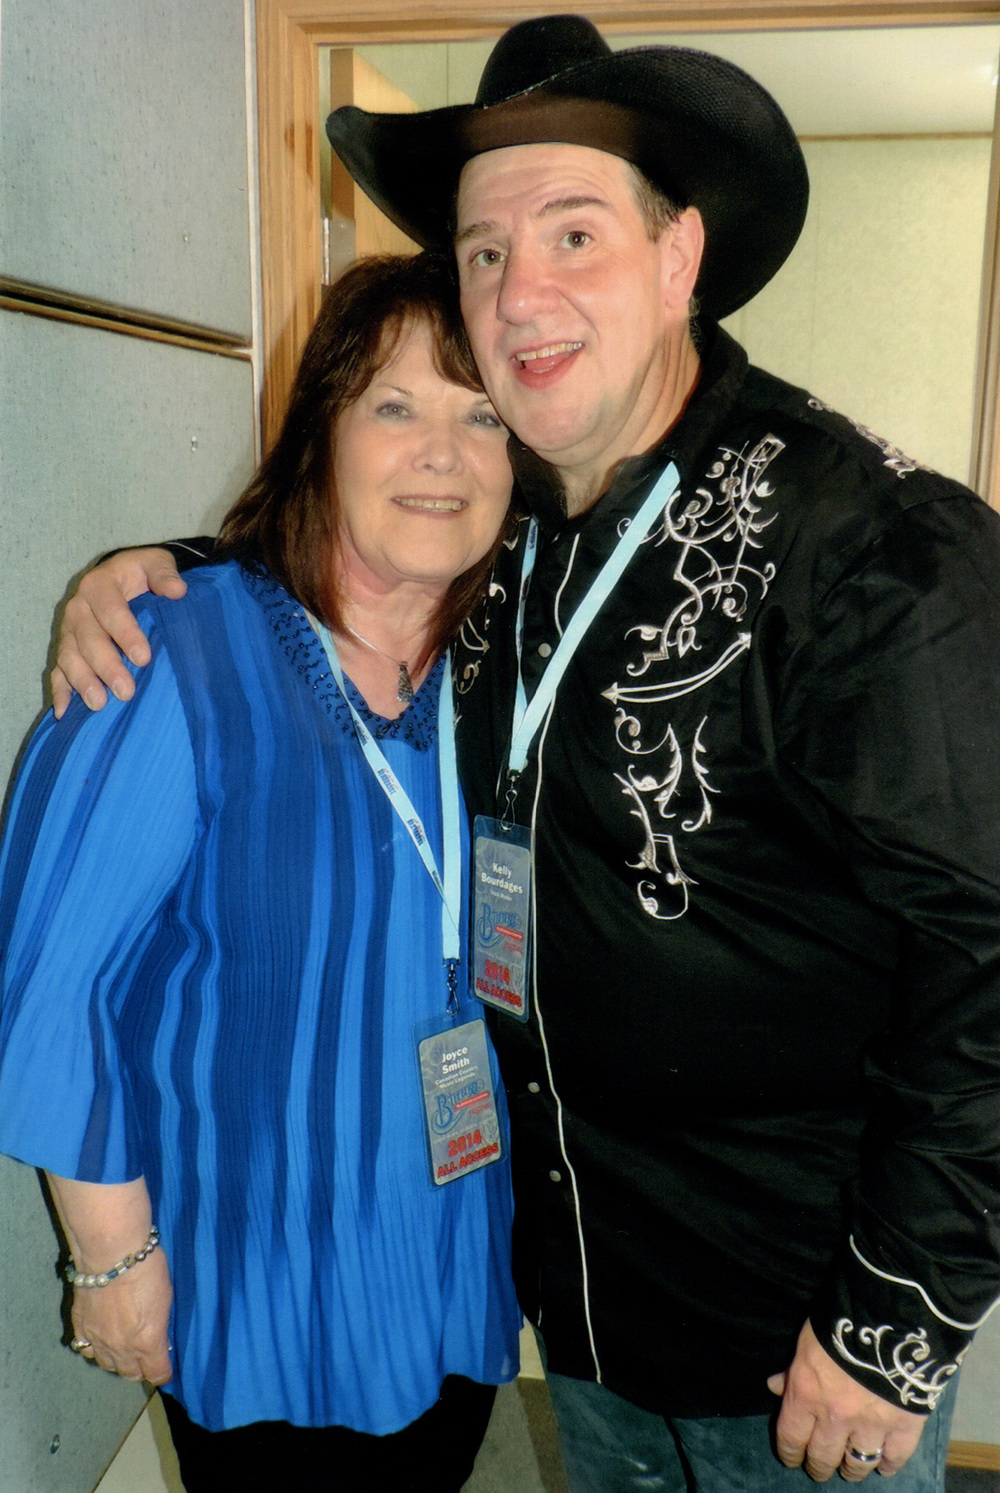 Joyce Smith with Kelly Bourdages of Trick Ryder